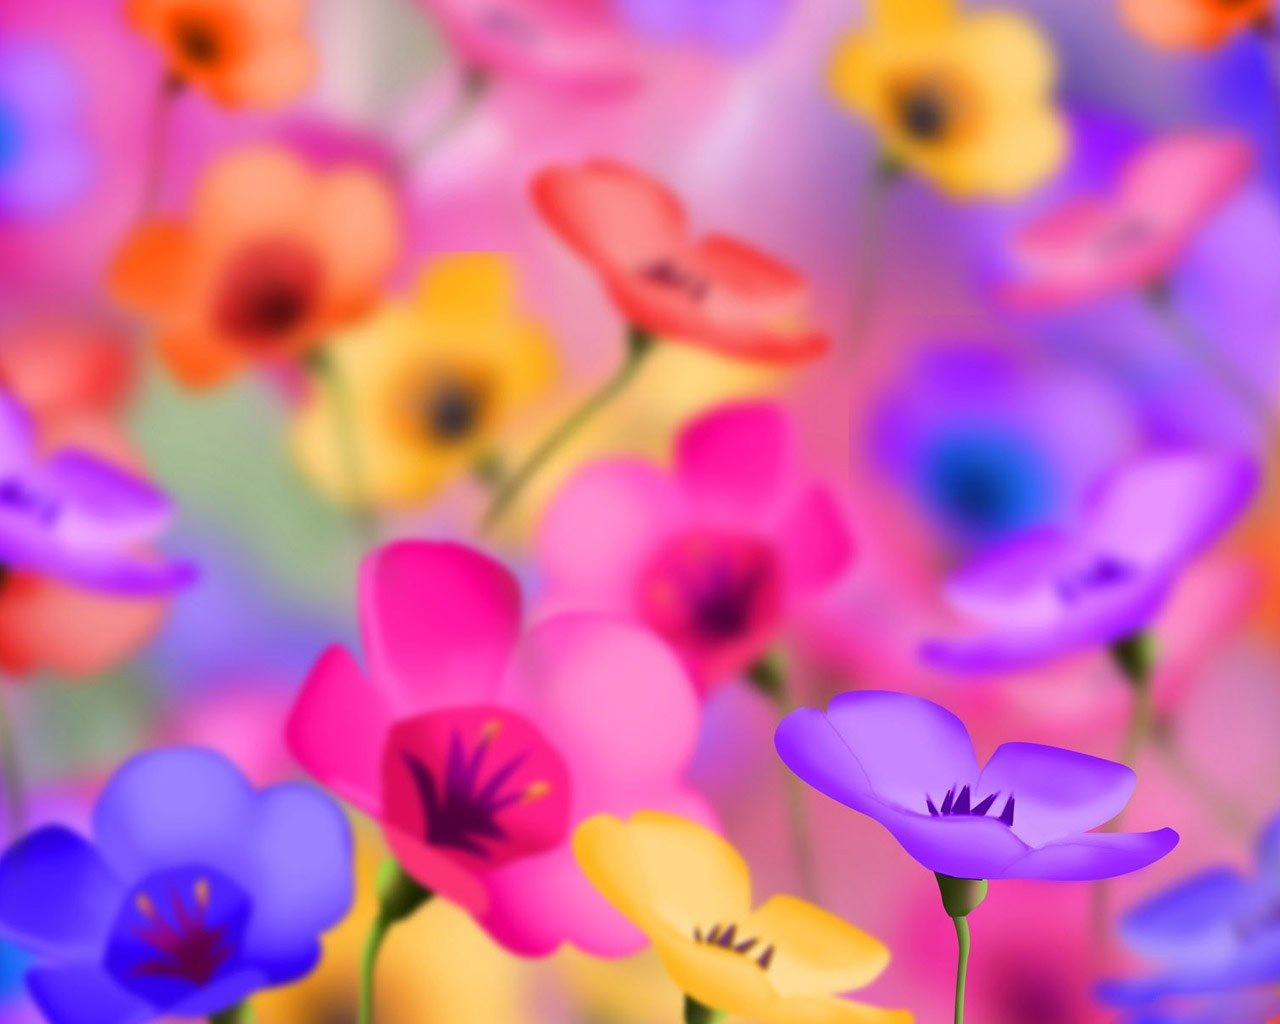 flowers for flower lovers Flowers background desktop wallpapers 1280x1024